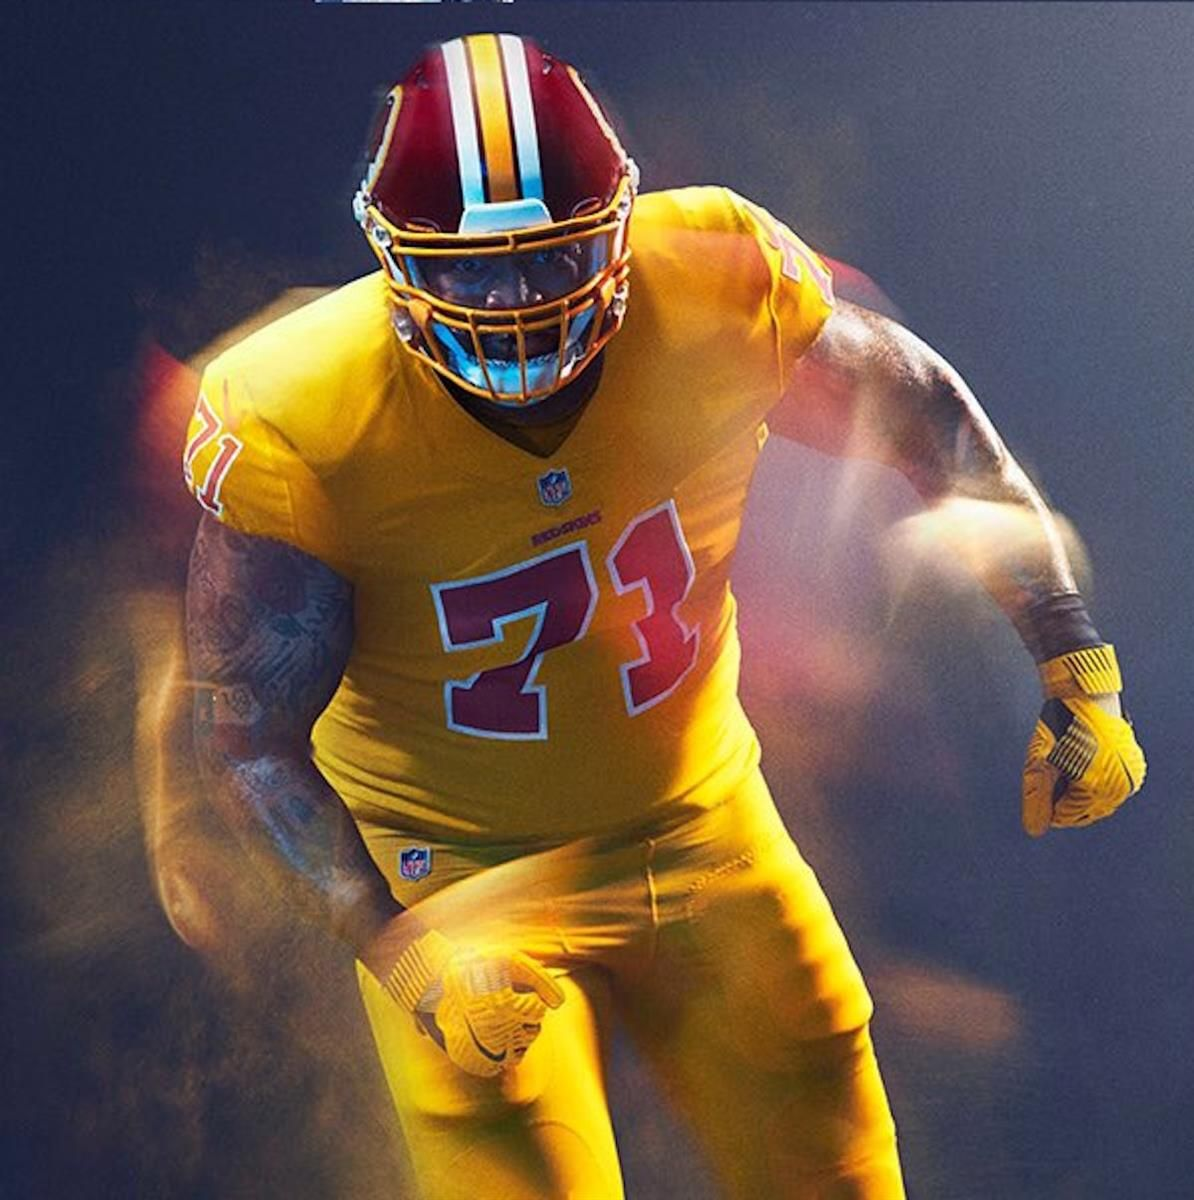 Power Ranking all 32 NFL Color Rush Uniforms  32. Washington Redskins 82155beb3